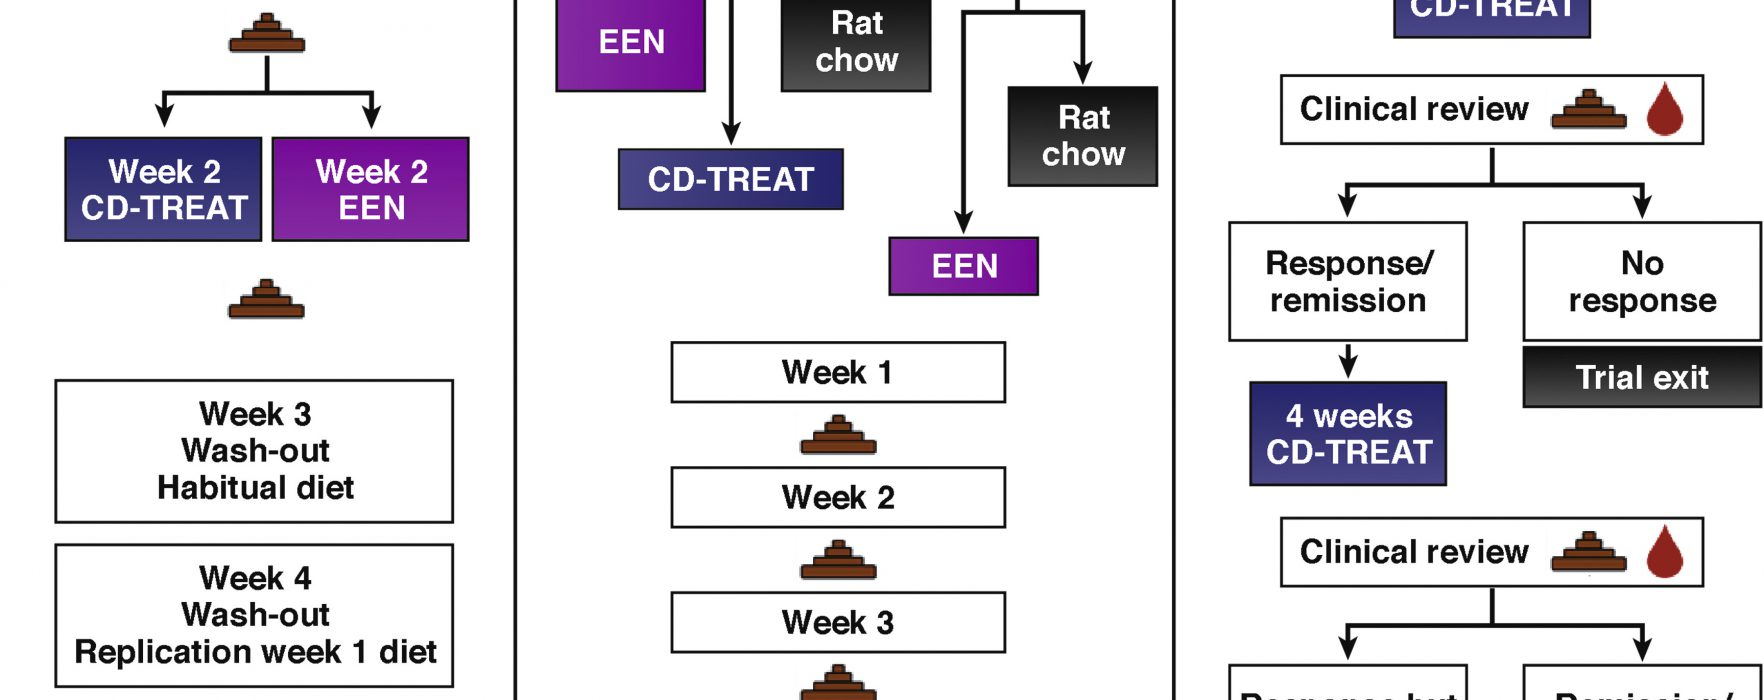 Can a Food-based Diet Replace Exclusive Enteral Nutrition for Patients With Crohn's Disease?